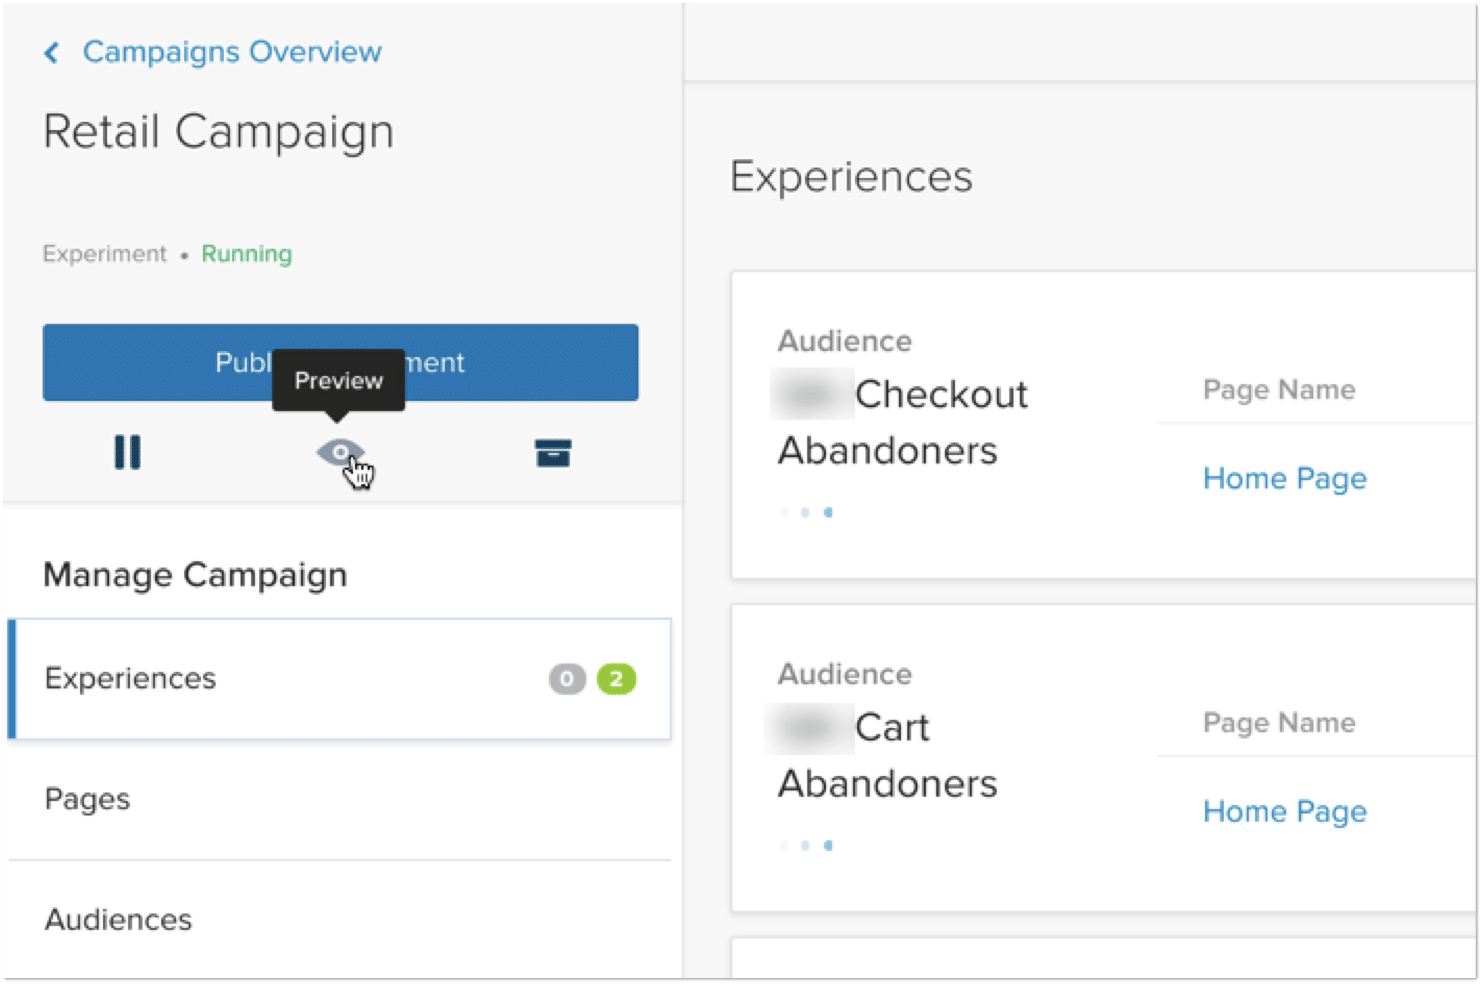 image of optimizely personalization campaigns overview screen